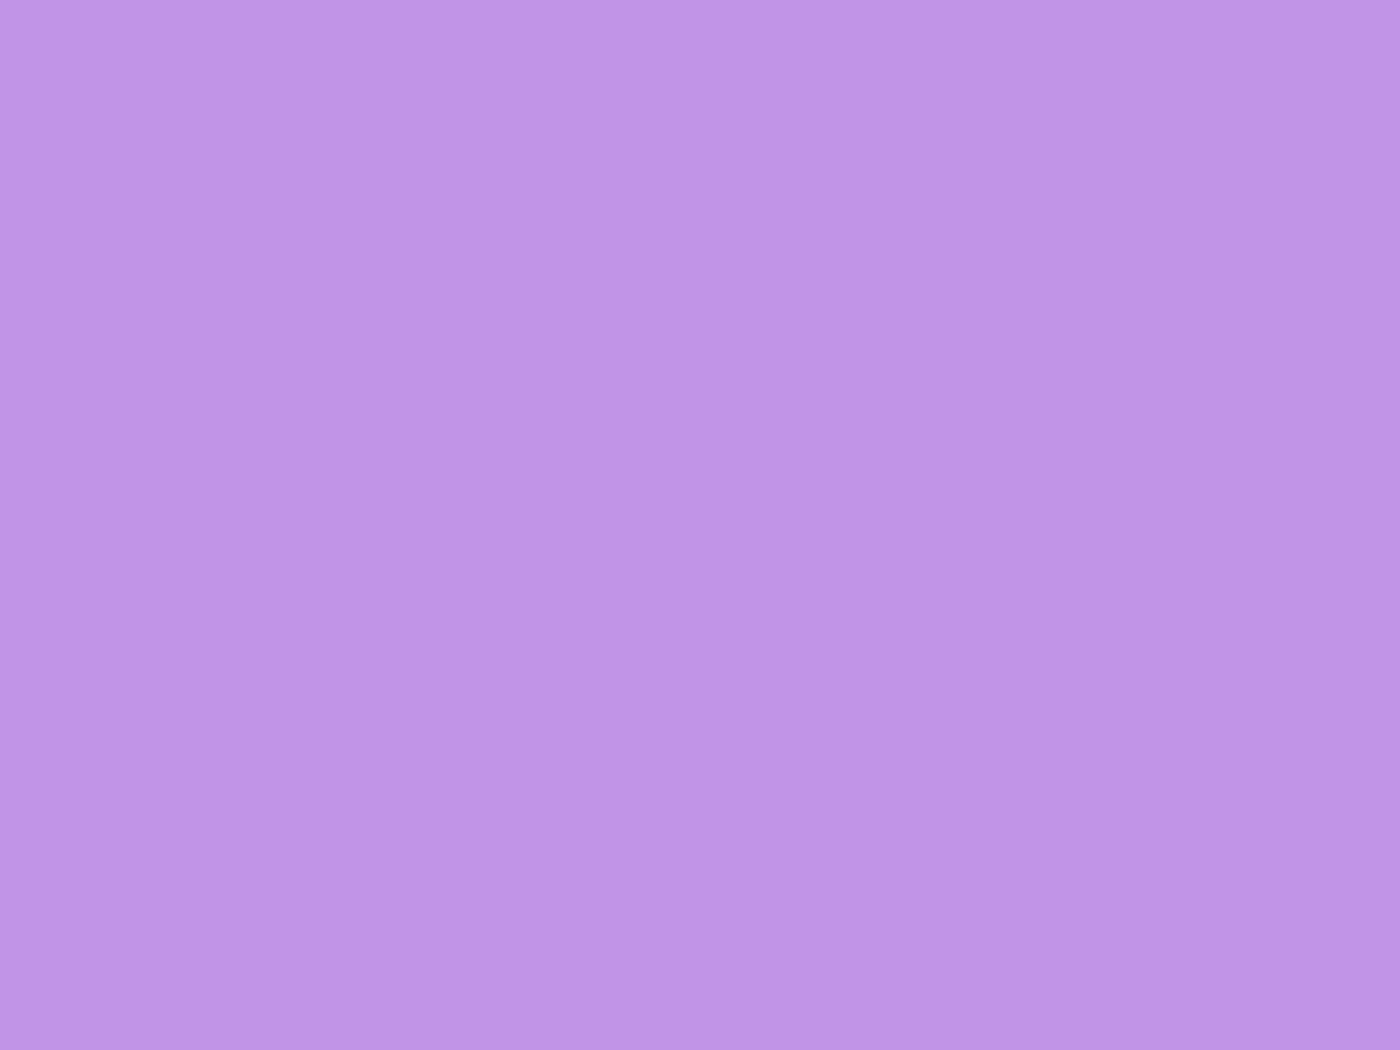 1400x1050 Bright Lavender Solid Color Background